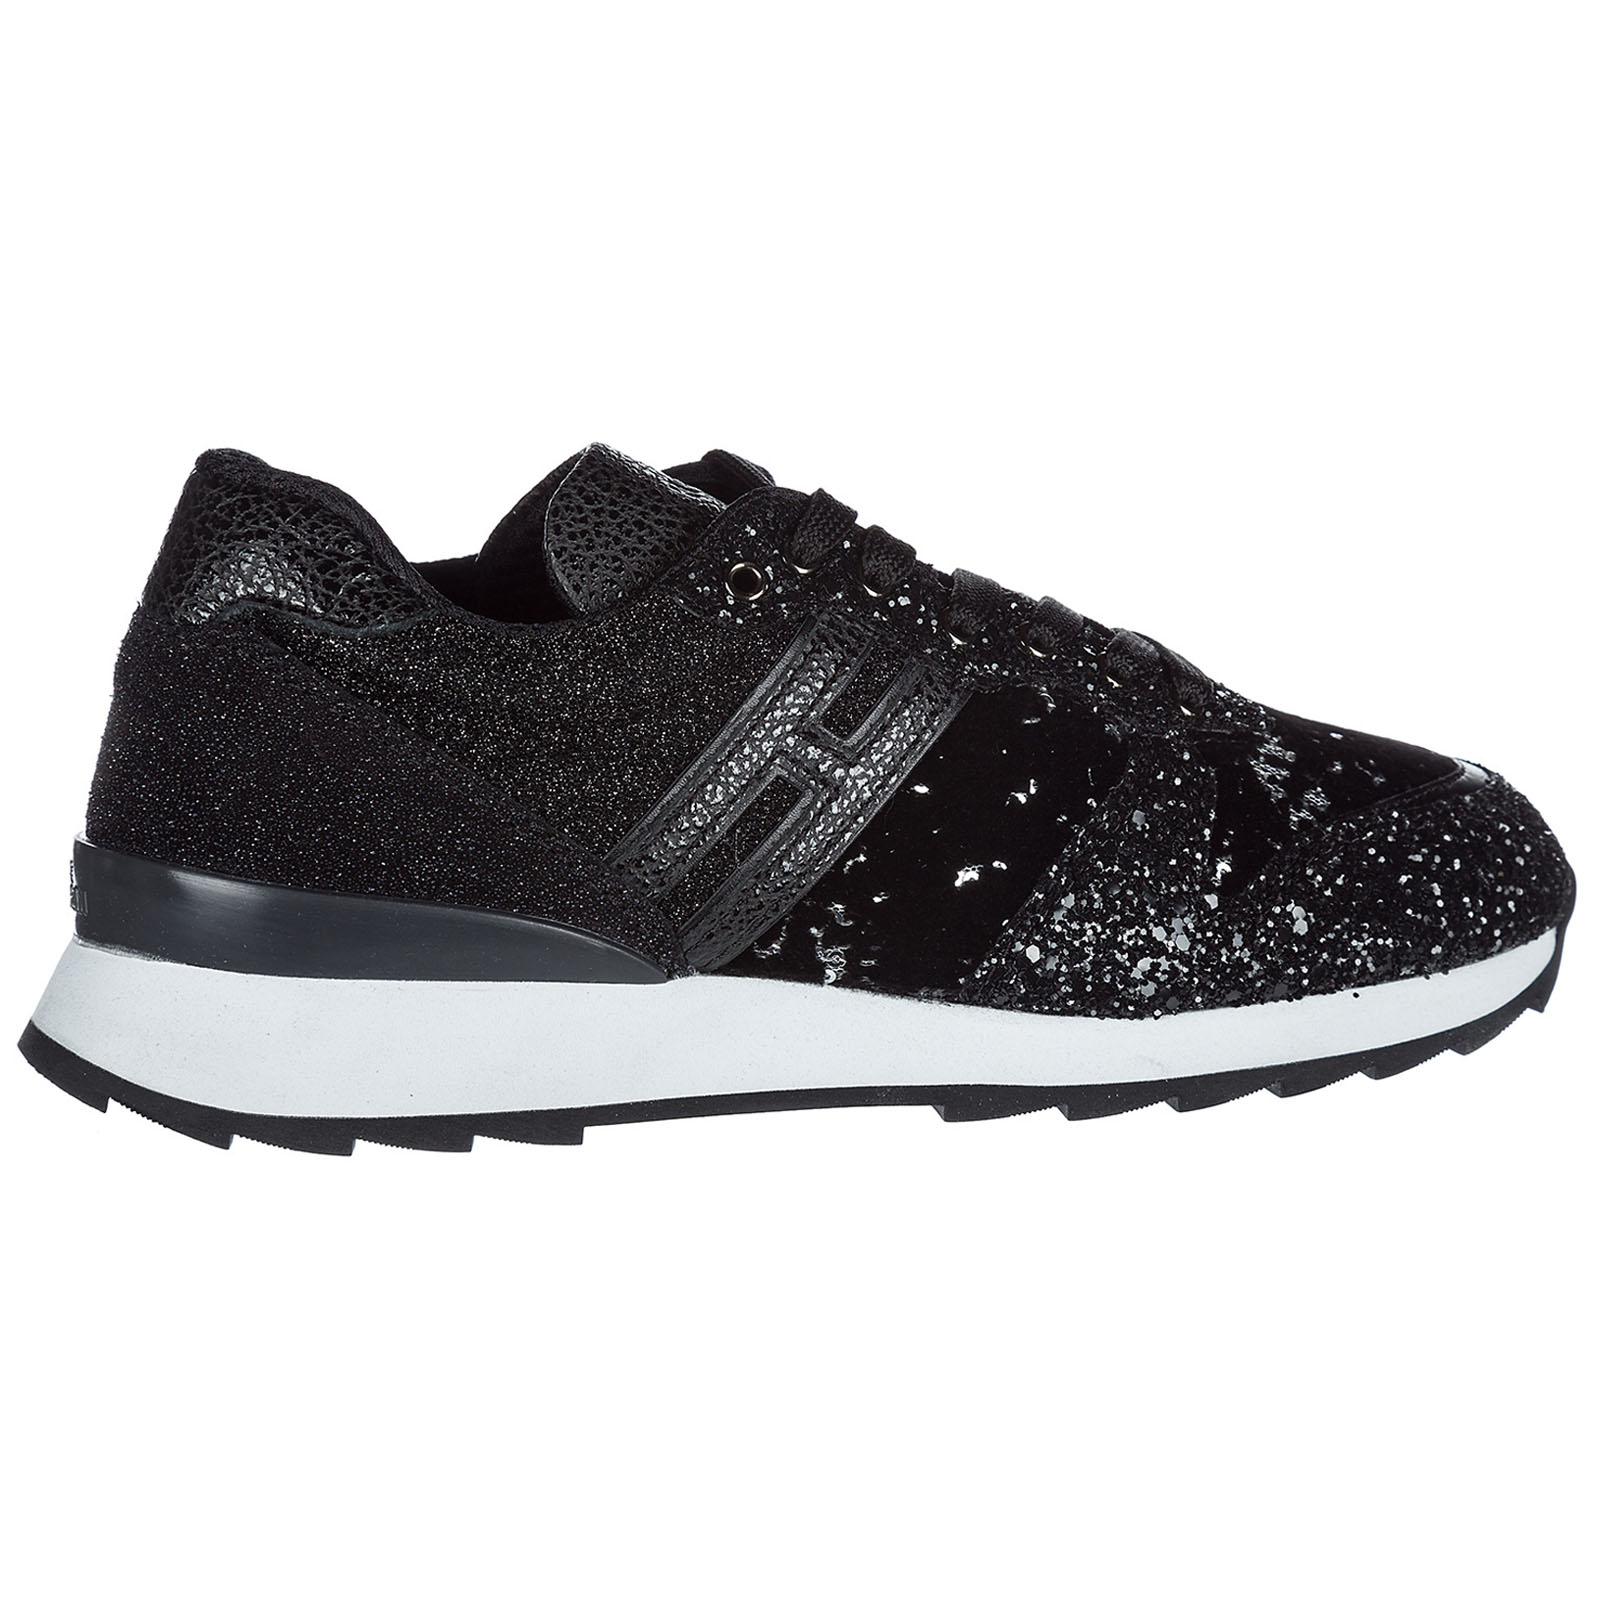 ... Women s shoes leather trainers sneakers r261 ... 8d0347eb246